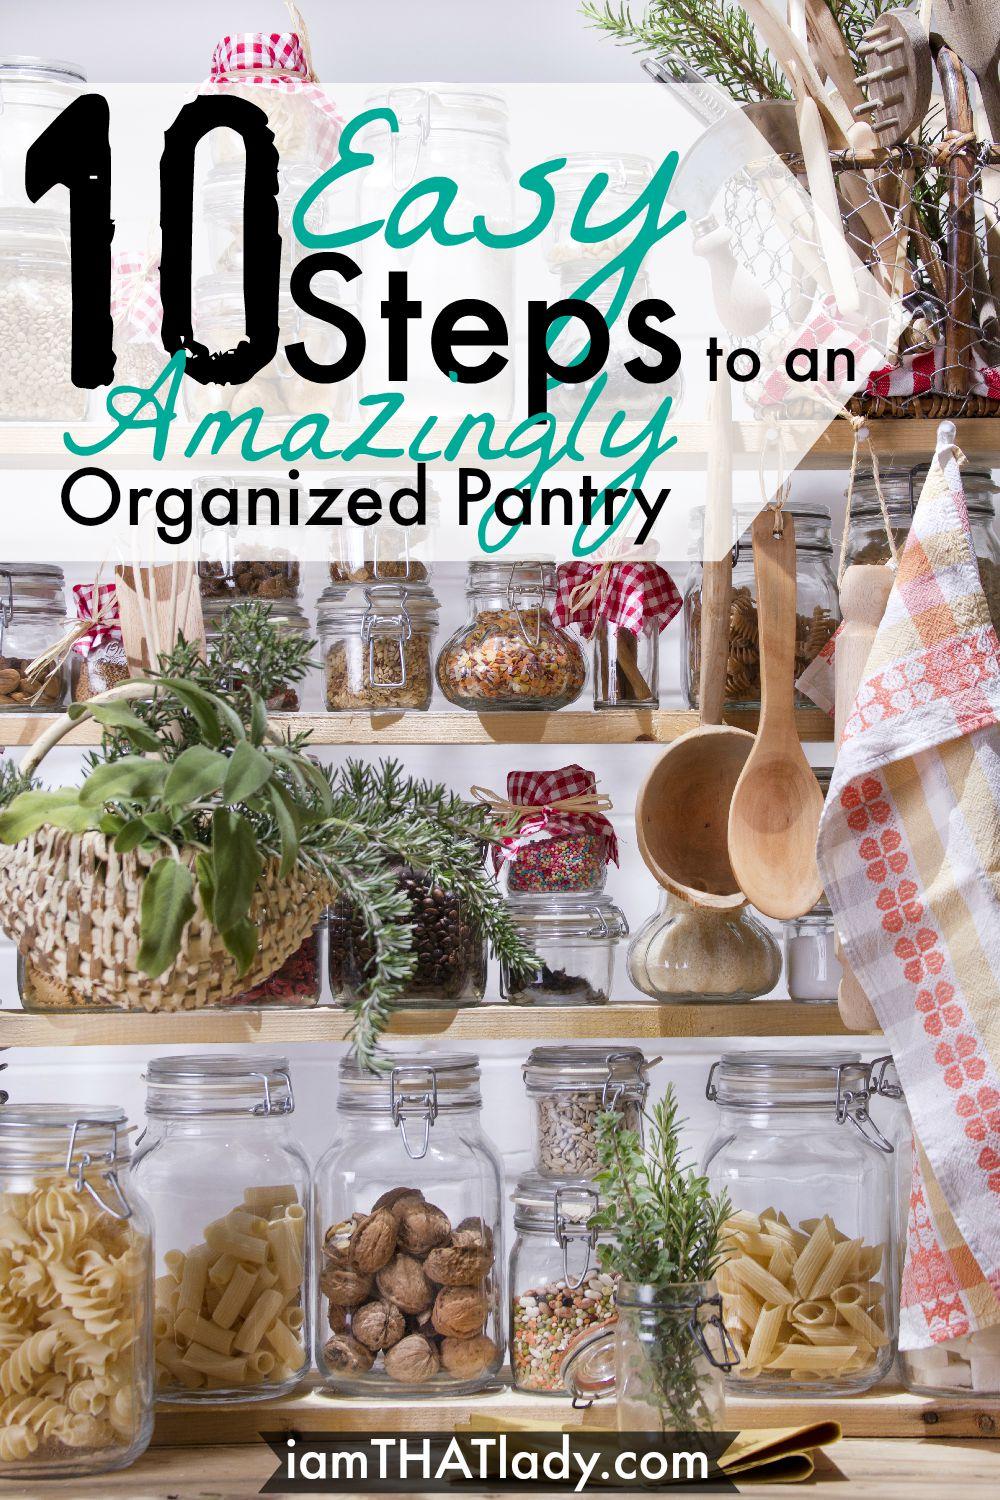 Is your pantry OUT OF CONTROL Here are 10 EASY Steps to an amazingly organized pantry!